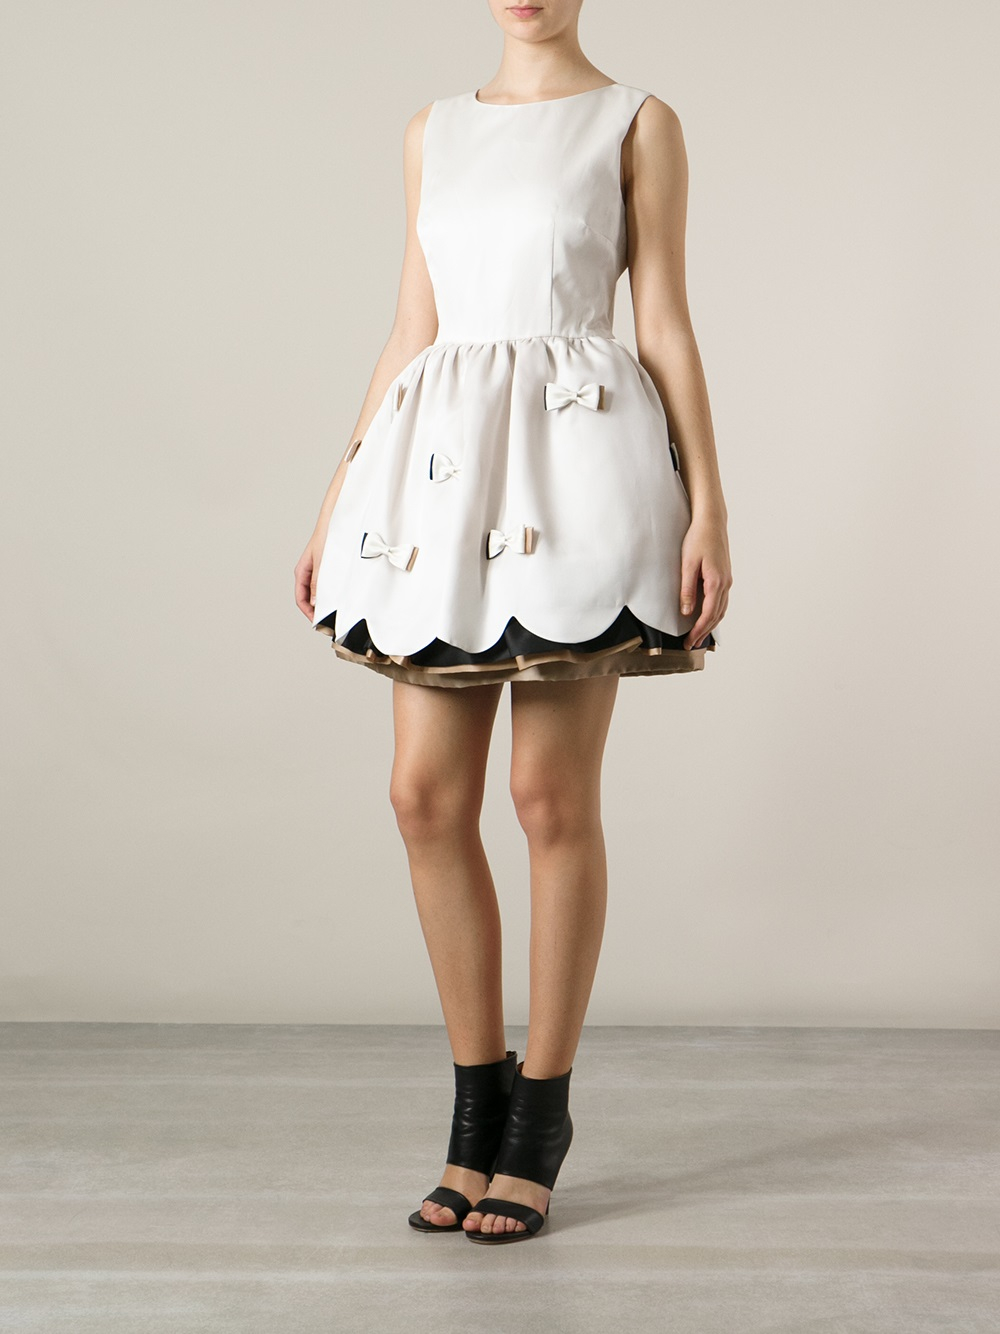 Red Valentino Spring 2016: Red Valentino Bow Detail Dress In White